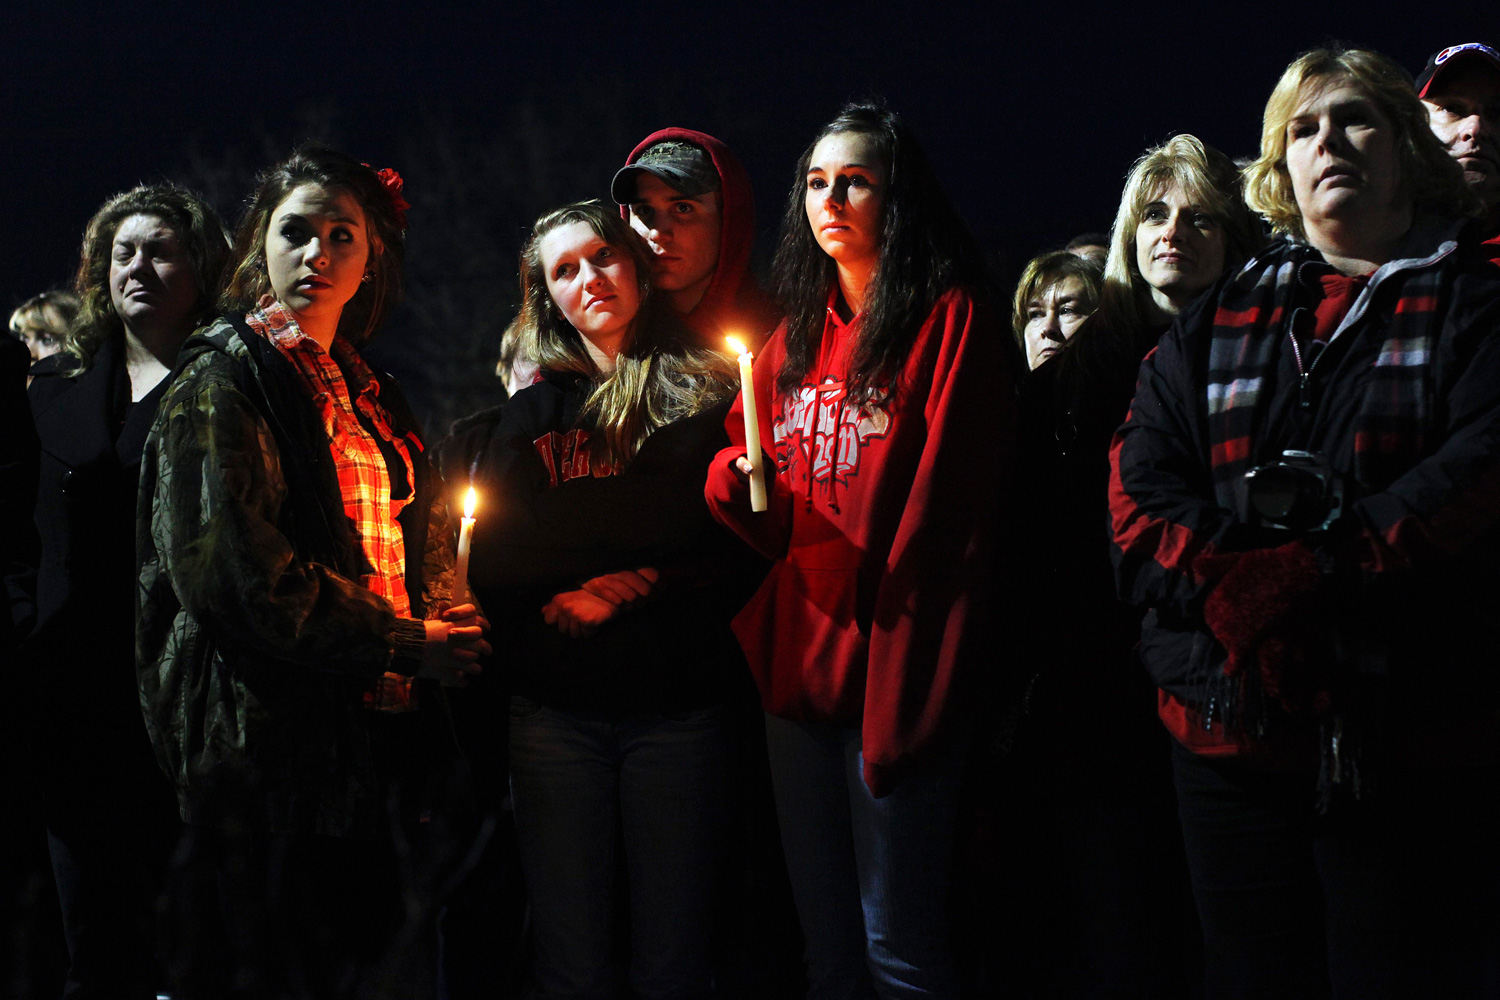 Feb. 28, 2012. People gather outside St. Mary's of Chardon for a candlelight vigil remembering the victims of a school shooting in Chardon, Ohio.